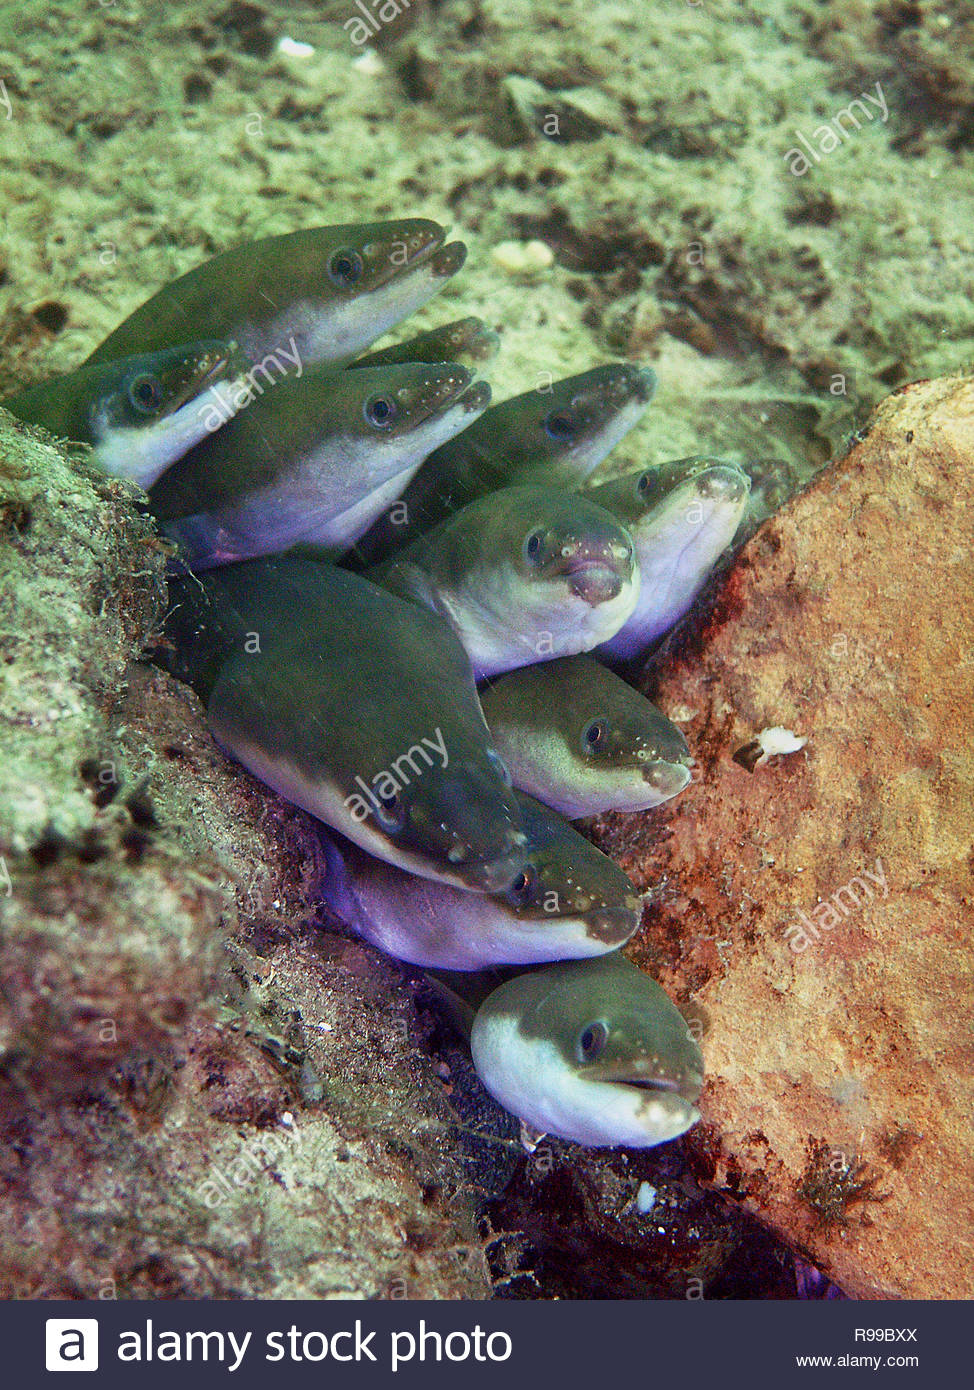 European eel (Anguilla anguilla), group, Baden-Württemberg, Germany - Stock Image